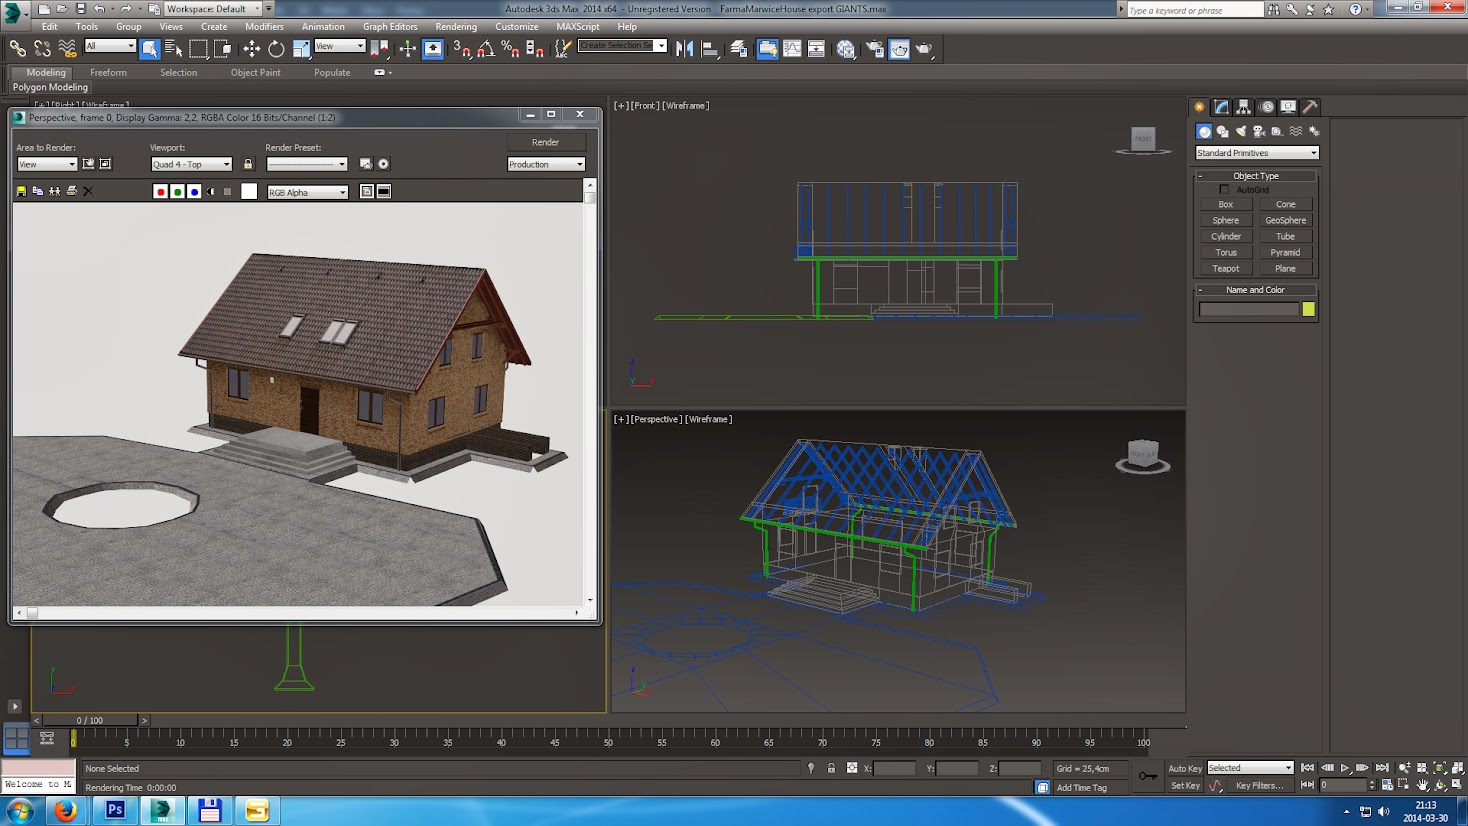 3ds max models after exporting to i3d spreads all over 3d model editor